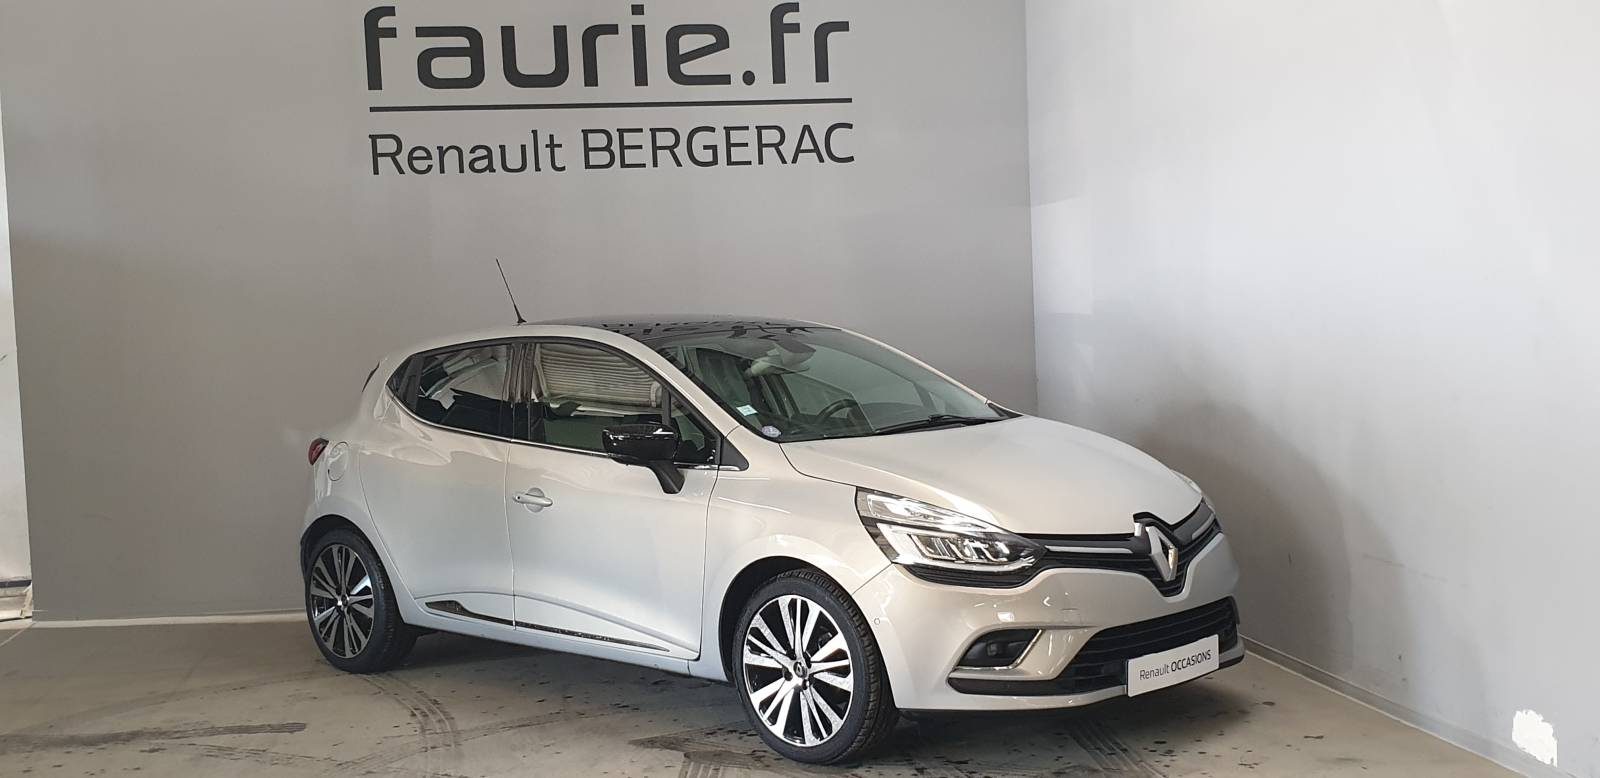 RENAULT Clio IV TCe 120 Energy - véhicule d'occasion - Site Internet Faurie - Renault - Faurie Auto Bergerac - 24100 - Bergerac - 3